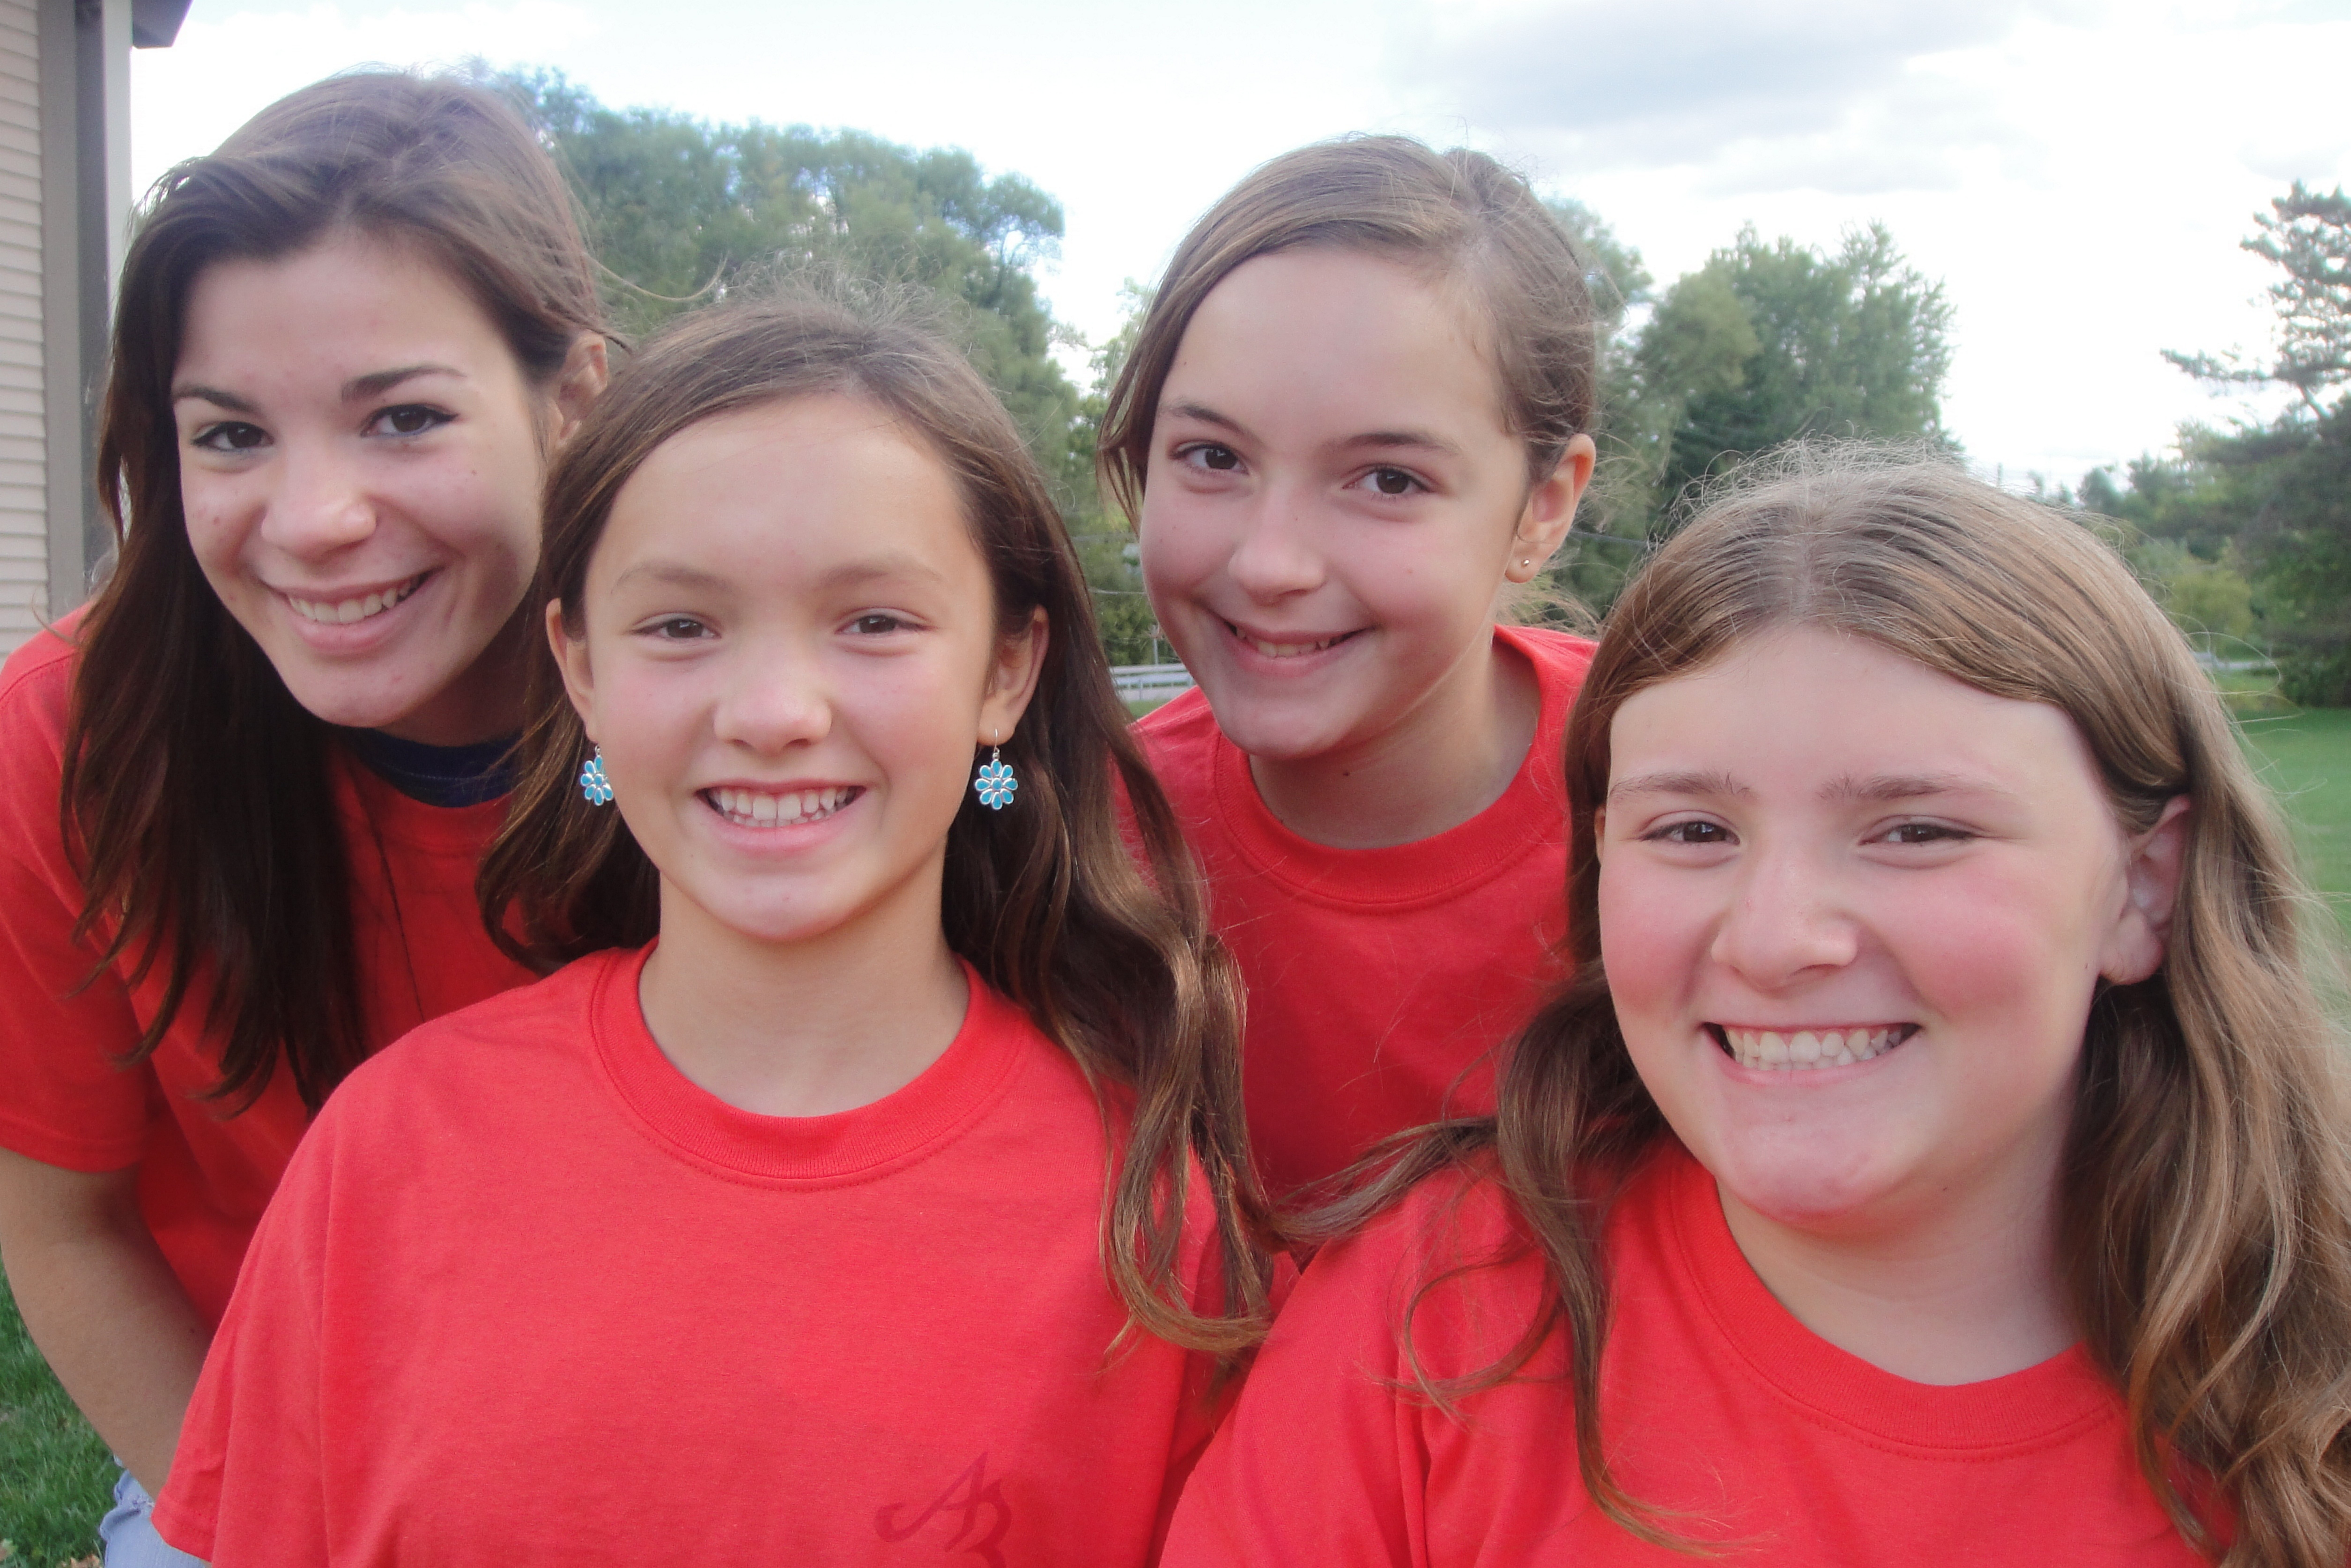 From left, Amherst residents and ABC Bel Canto Choir members Alex Zelazny, Brianna Hoover, Abigail Bilson and Emily Piosenka.